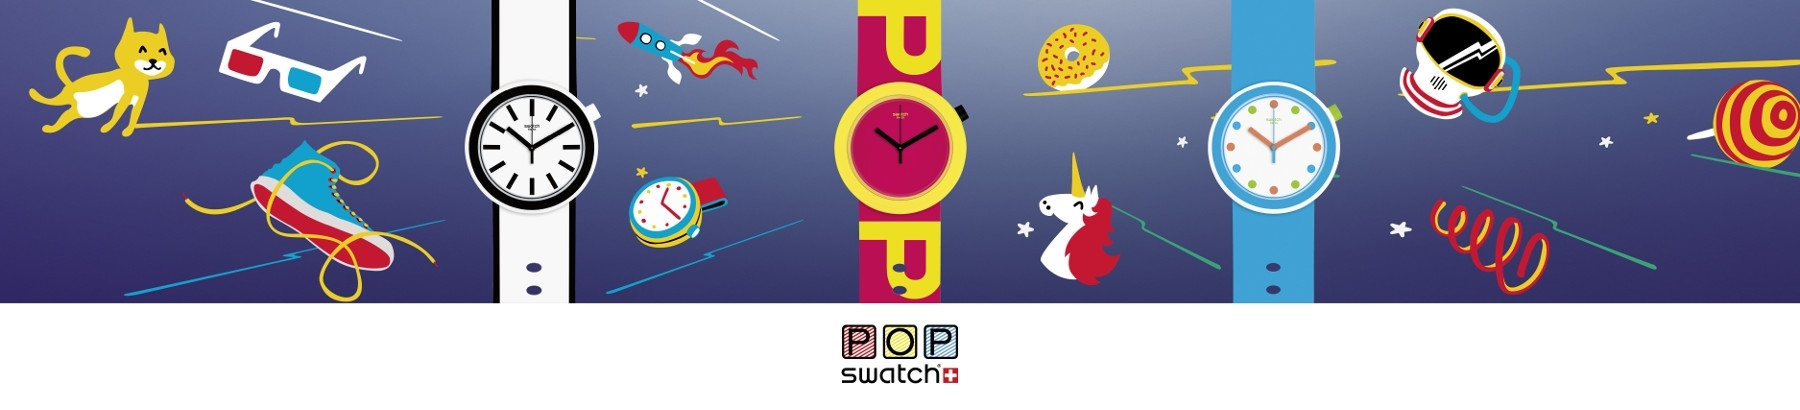 Shop Swatch Pop Watches